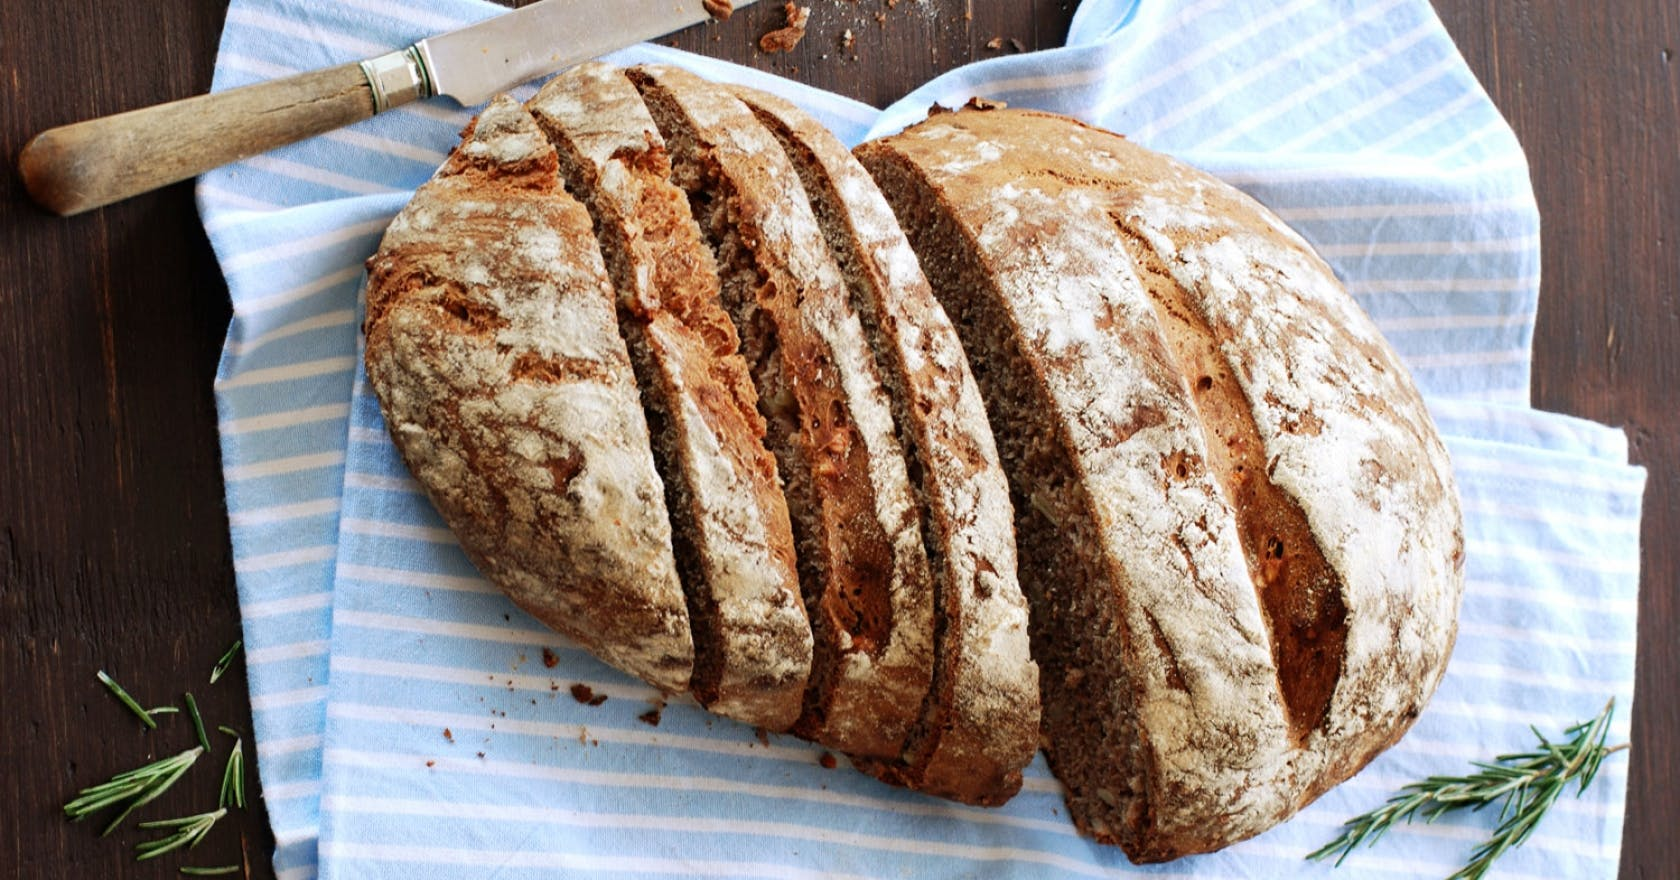 Yes, you can make your own bread